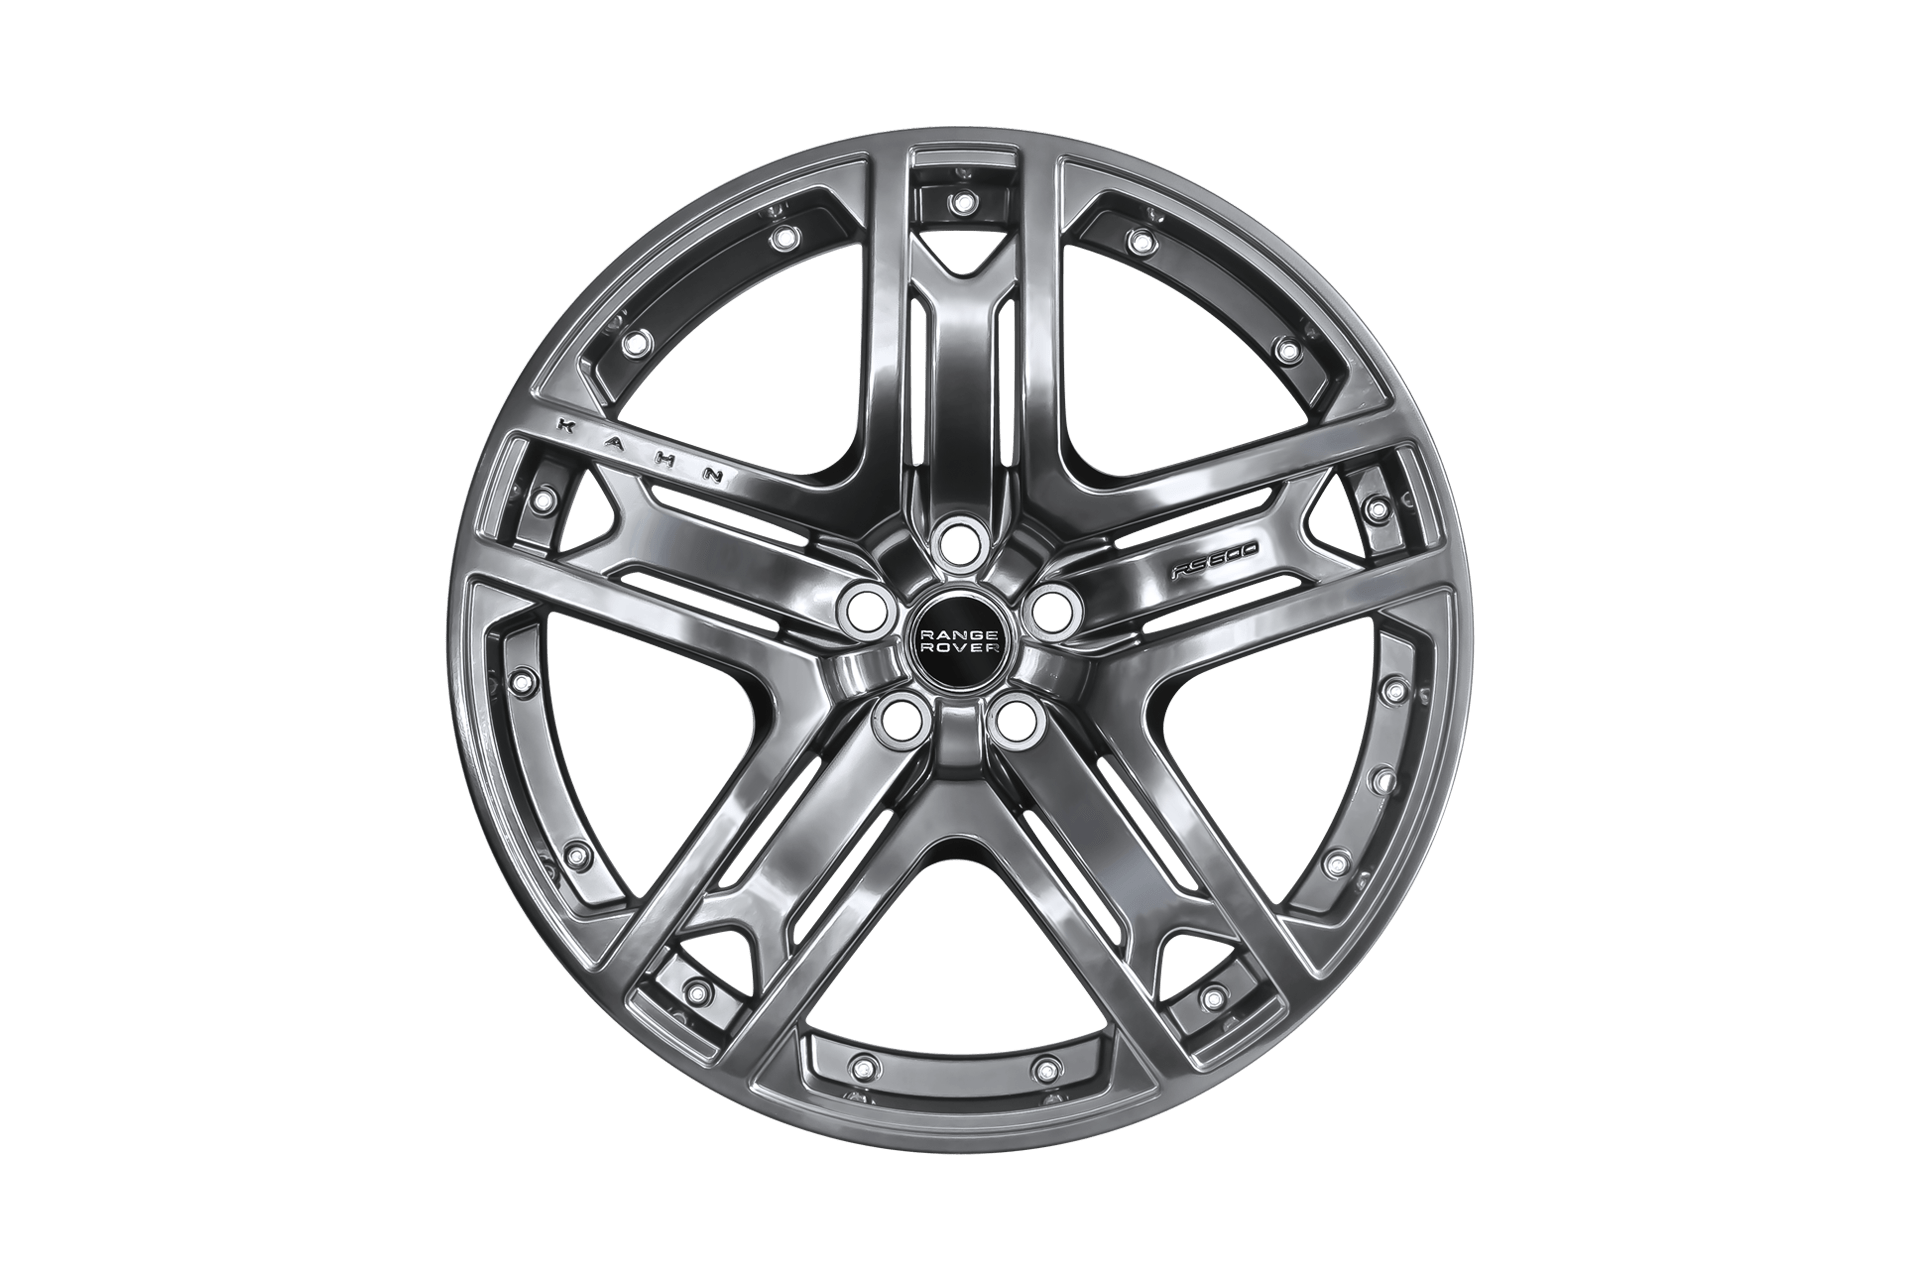 Range Rover Sport (2005-2013) Rs600 Light Alloy Wheels by Kahn - Image 3186